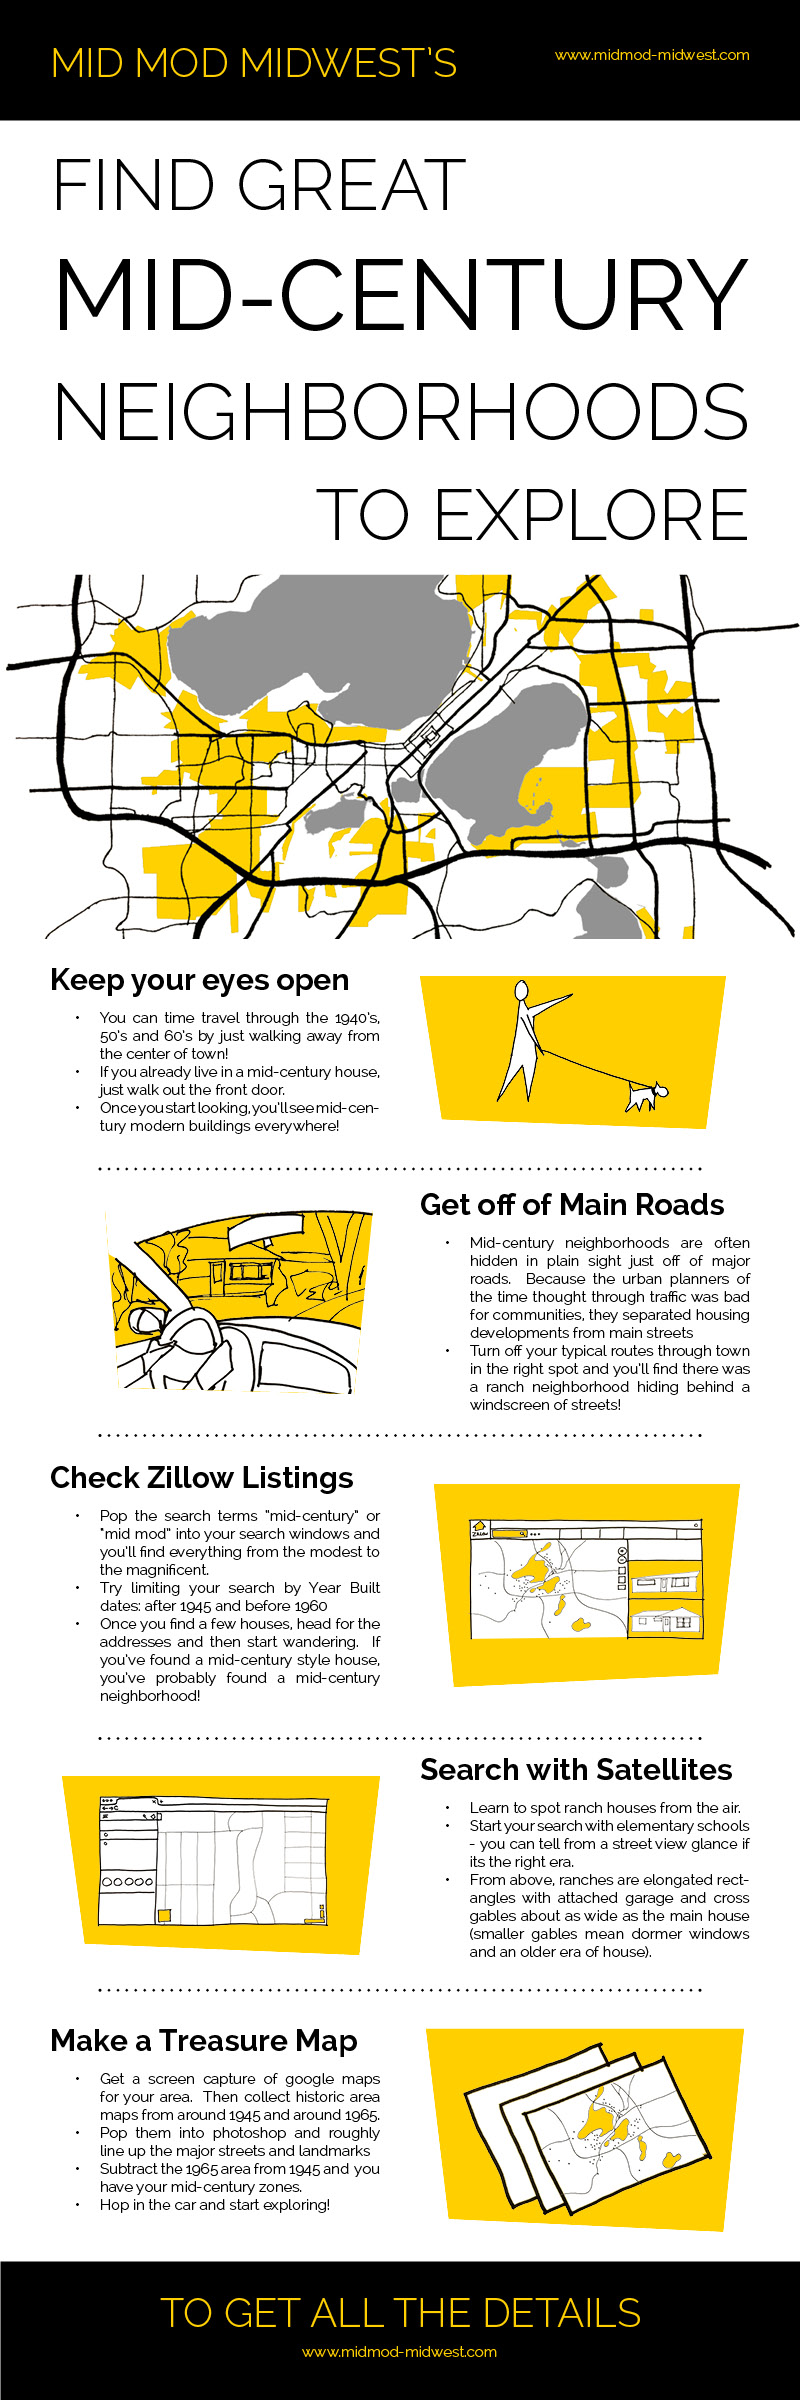 infographic how to find a mid-century neighborhood, madison mid-century neighborhood